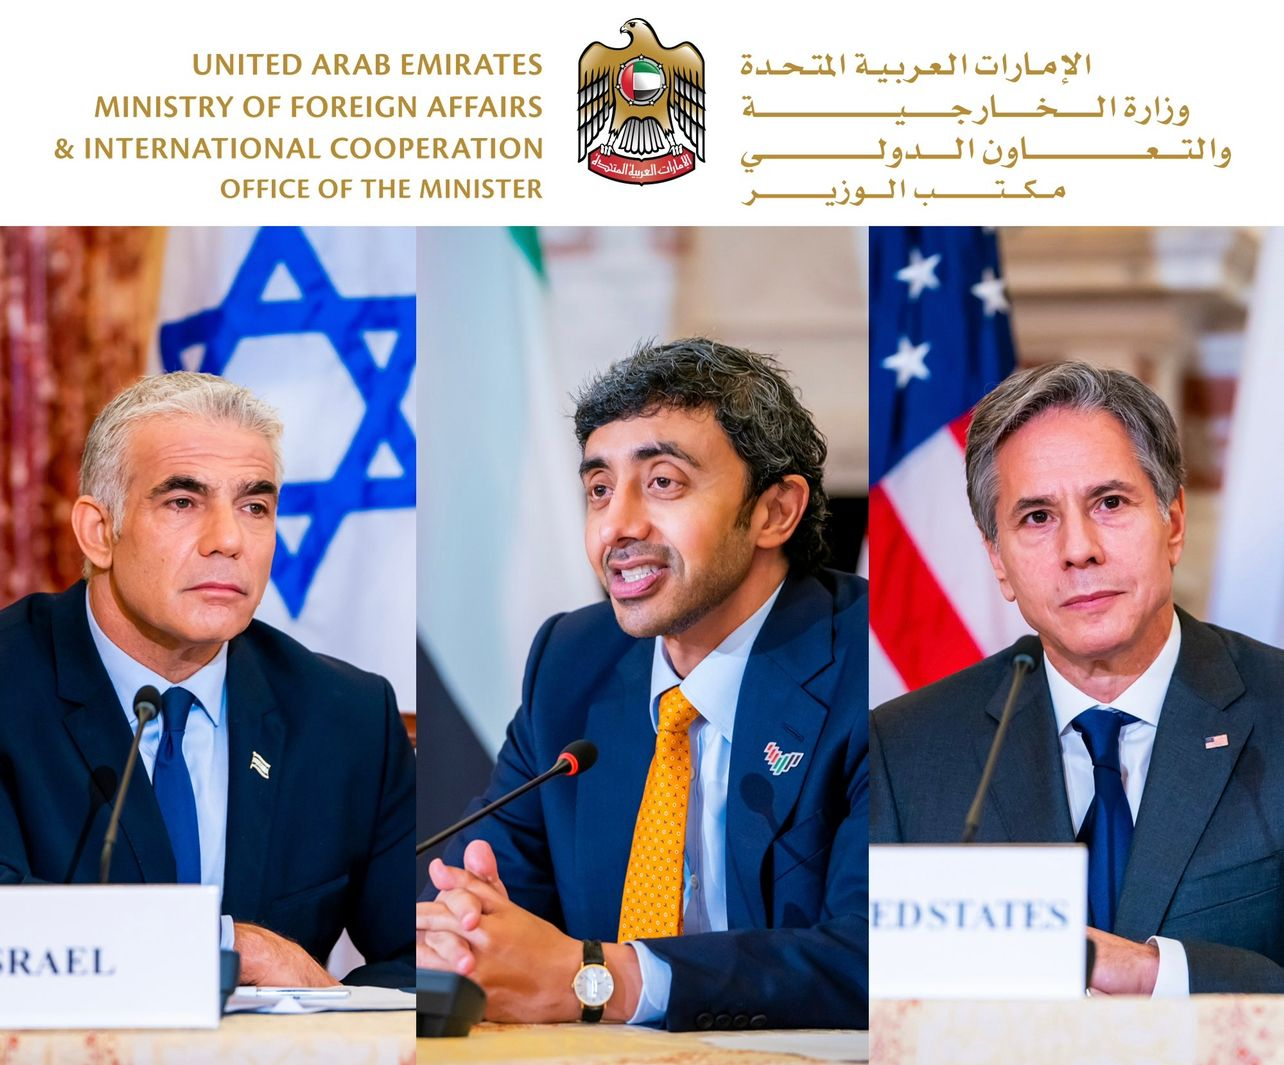 During Washington summit, UAE Foreign Minister reveals he is coming to Israel 'soon' to 'celebrate' new bilateral relationship